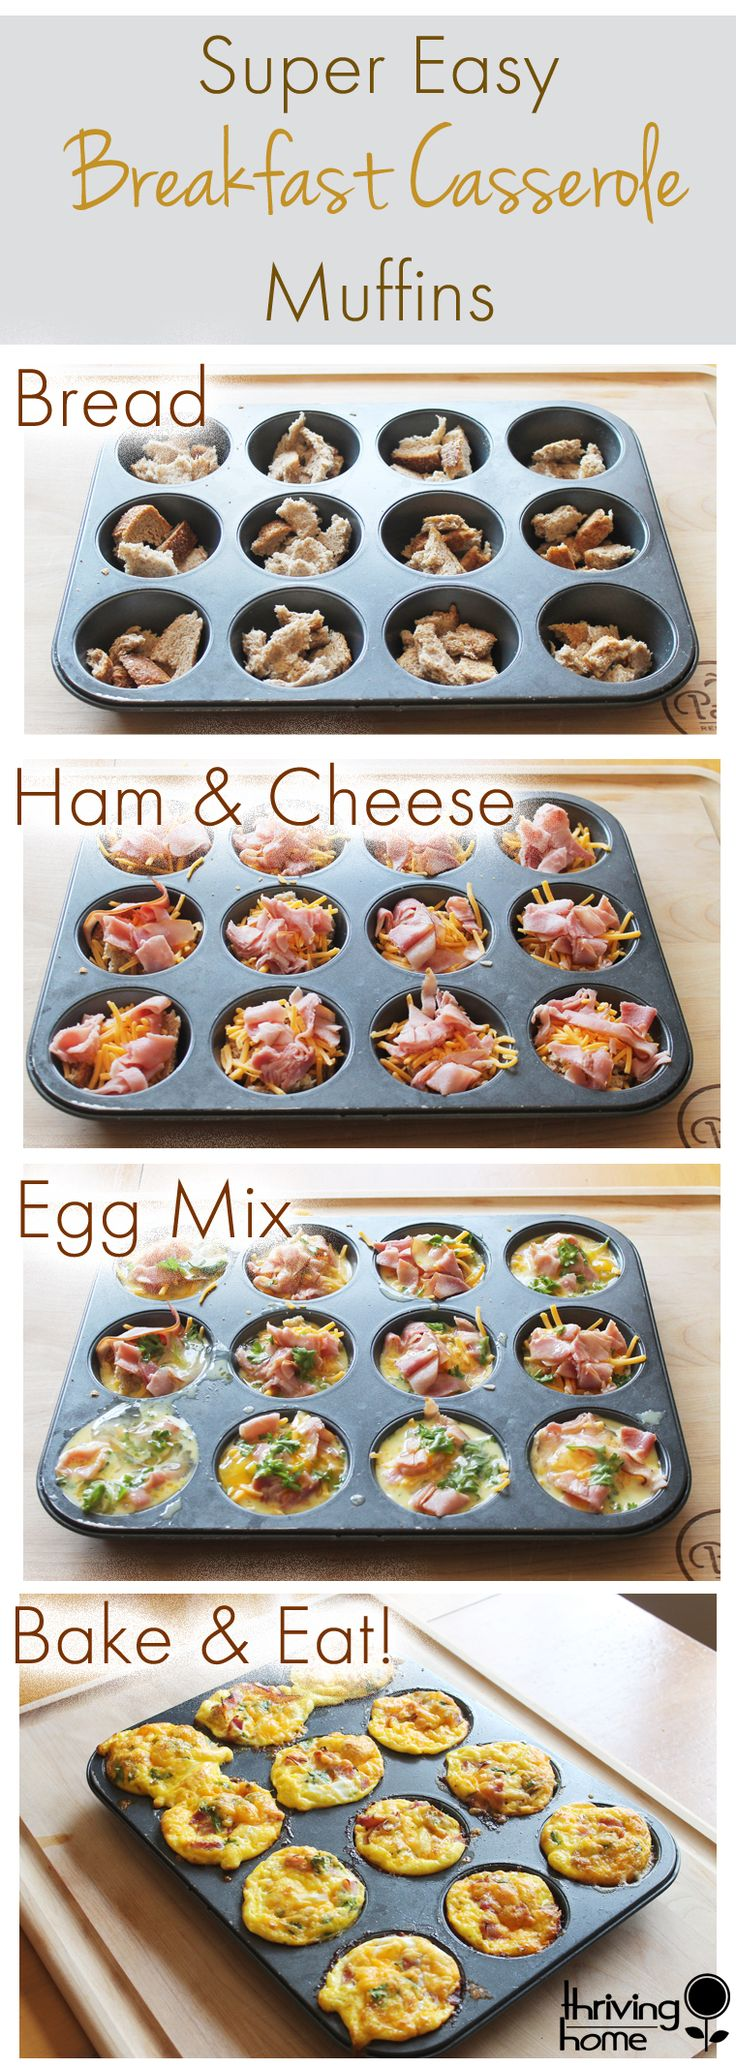 Easy Breakfast Casserole Muffins Recipe.